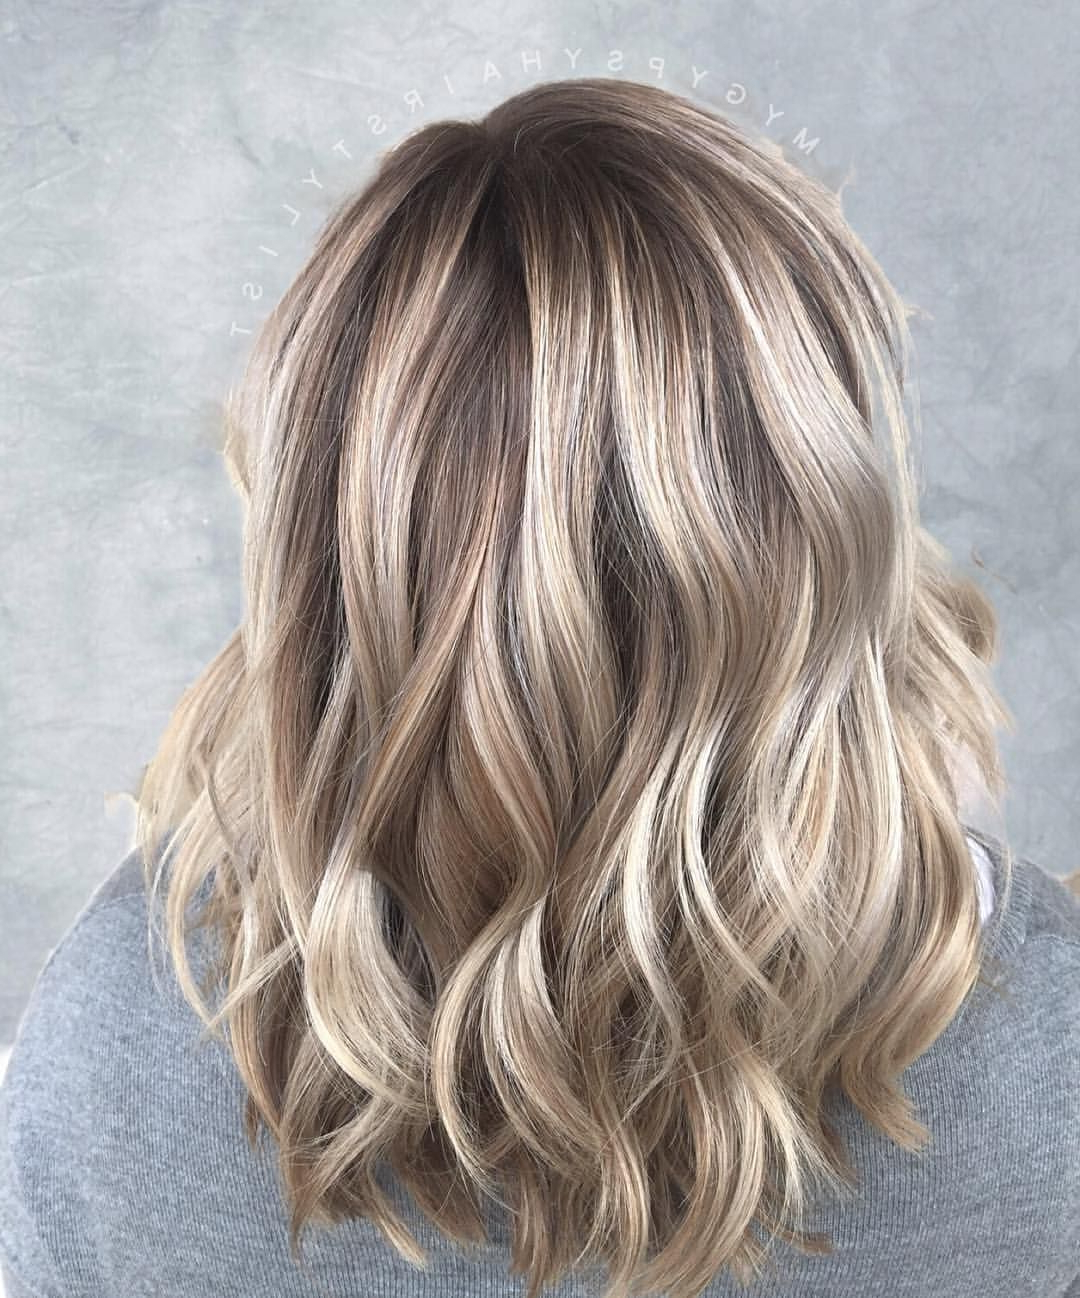 Blonde Balayage/ Shoulder Length Hair/ Dimensional Blonde/ Blonde Pertaining To Most Current Choppy Dimensional Layers For Balayage Long Hairstyles (View 9 of 20)